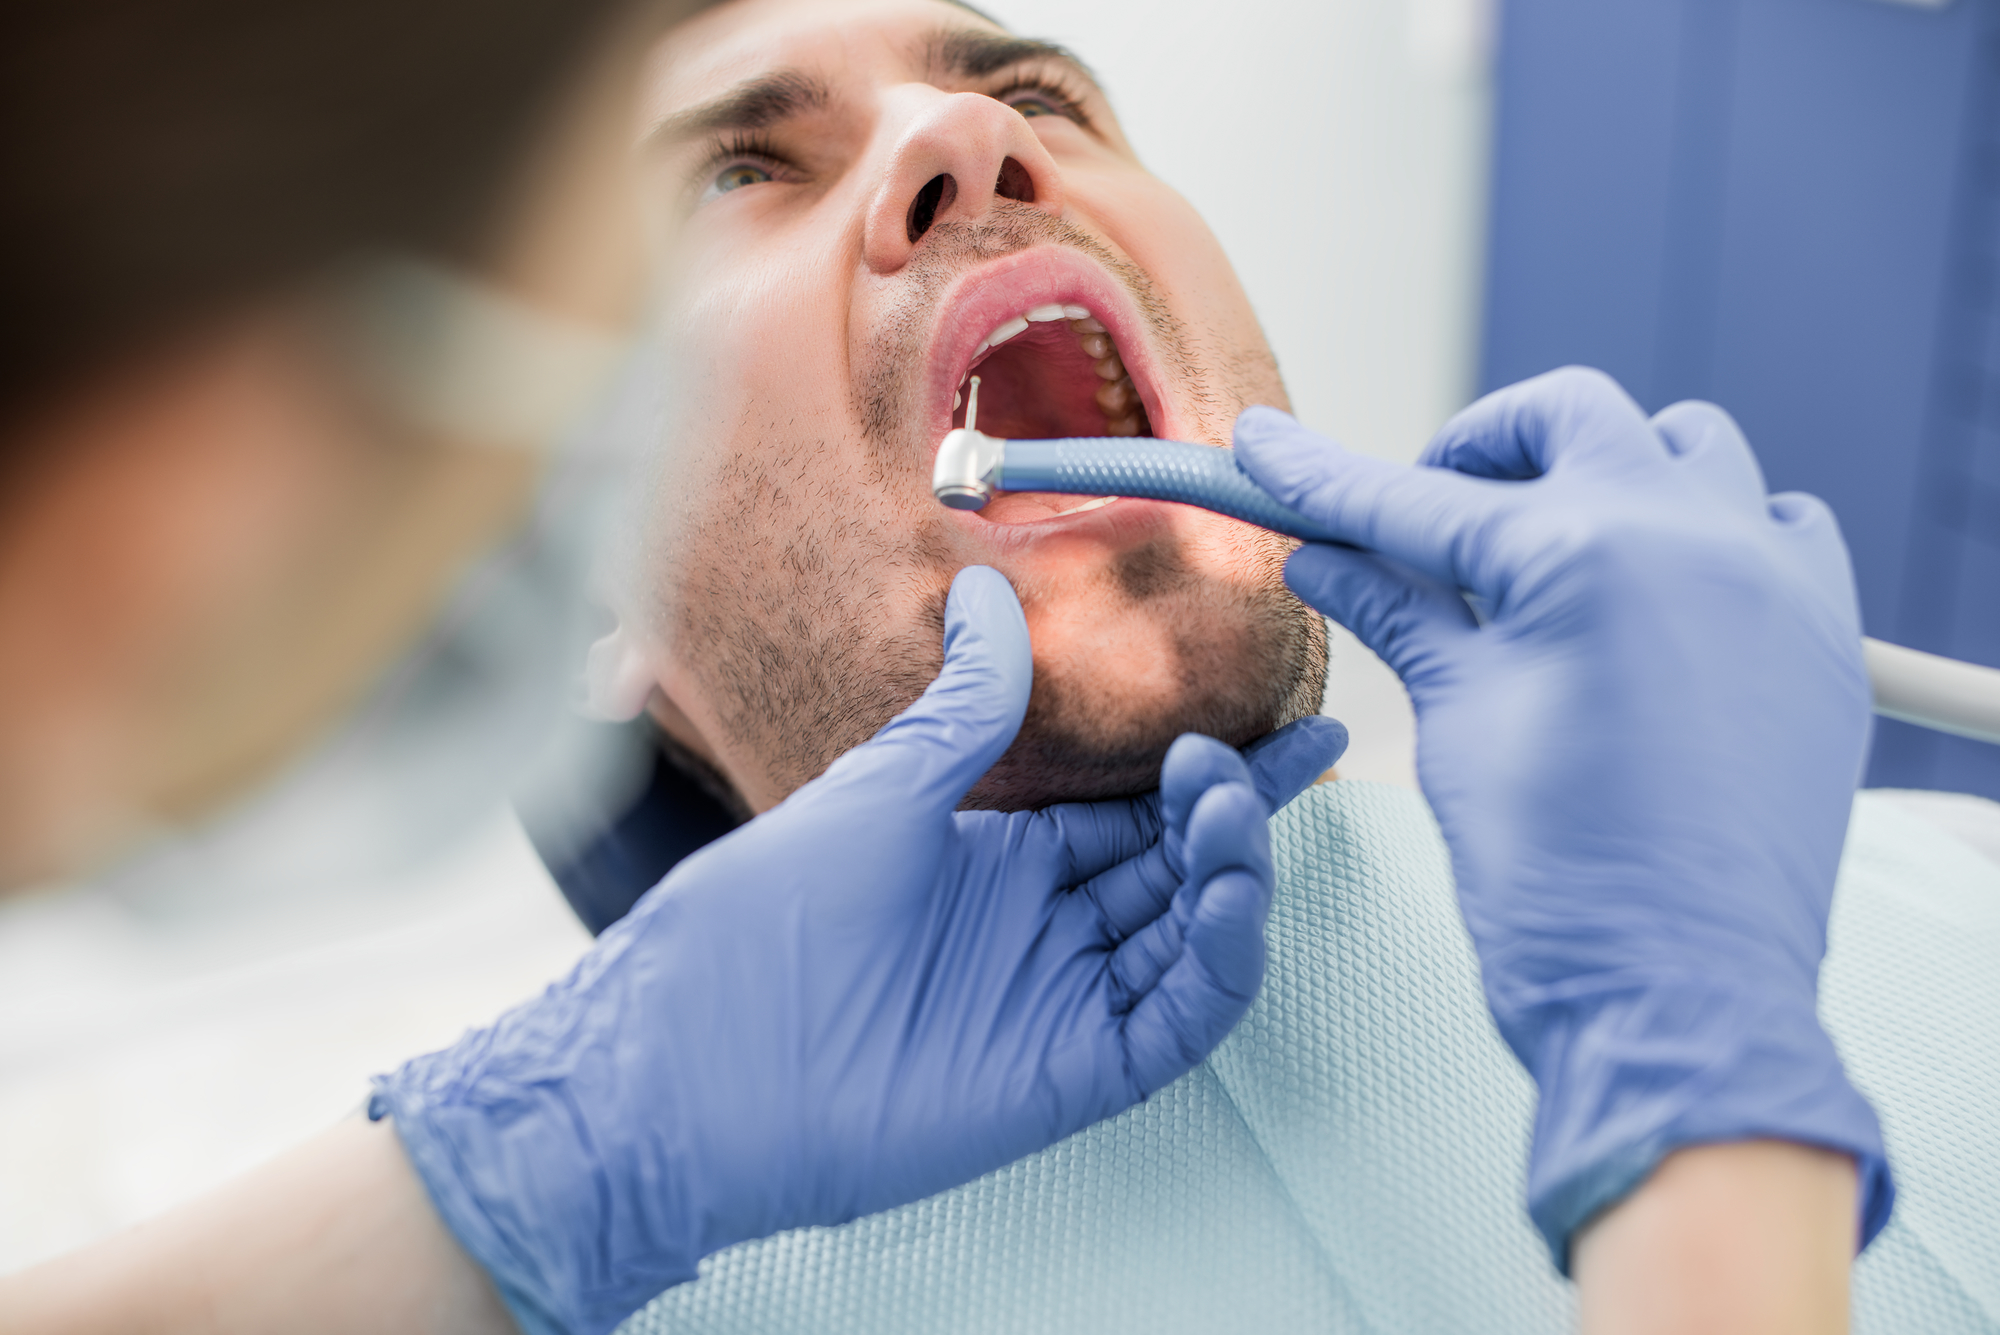 What is tooth extraction west palm beach?